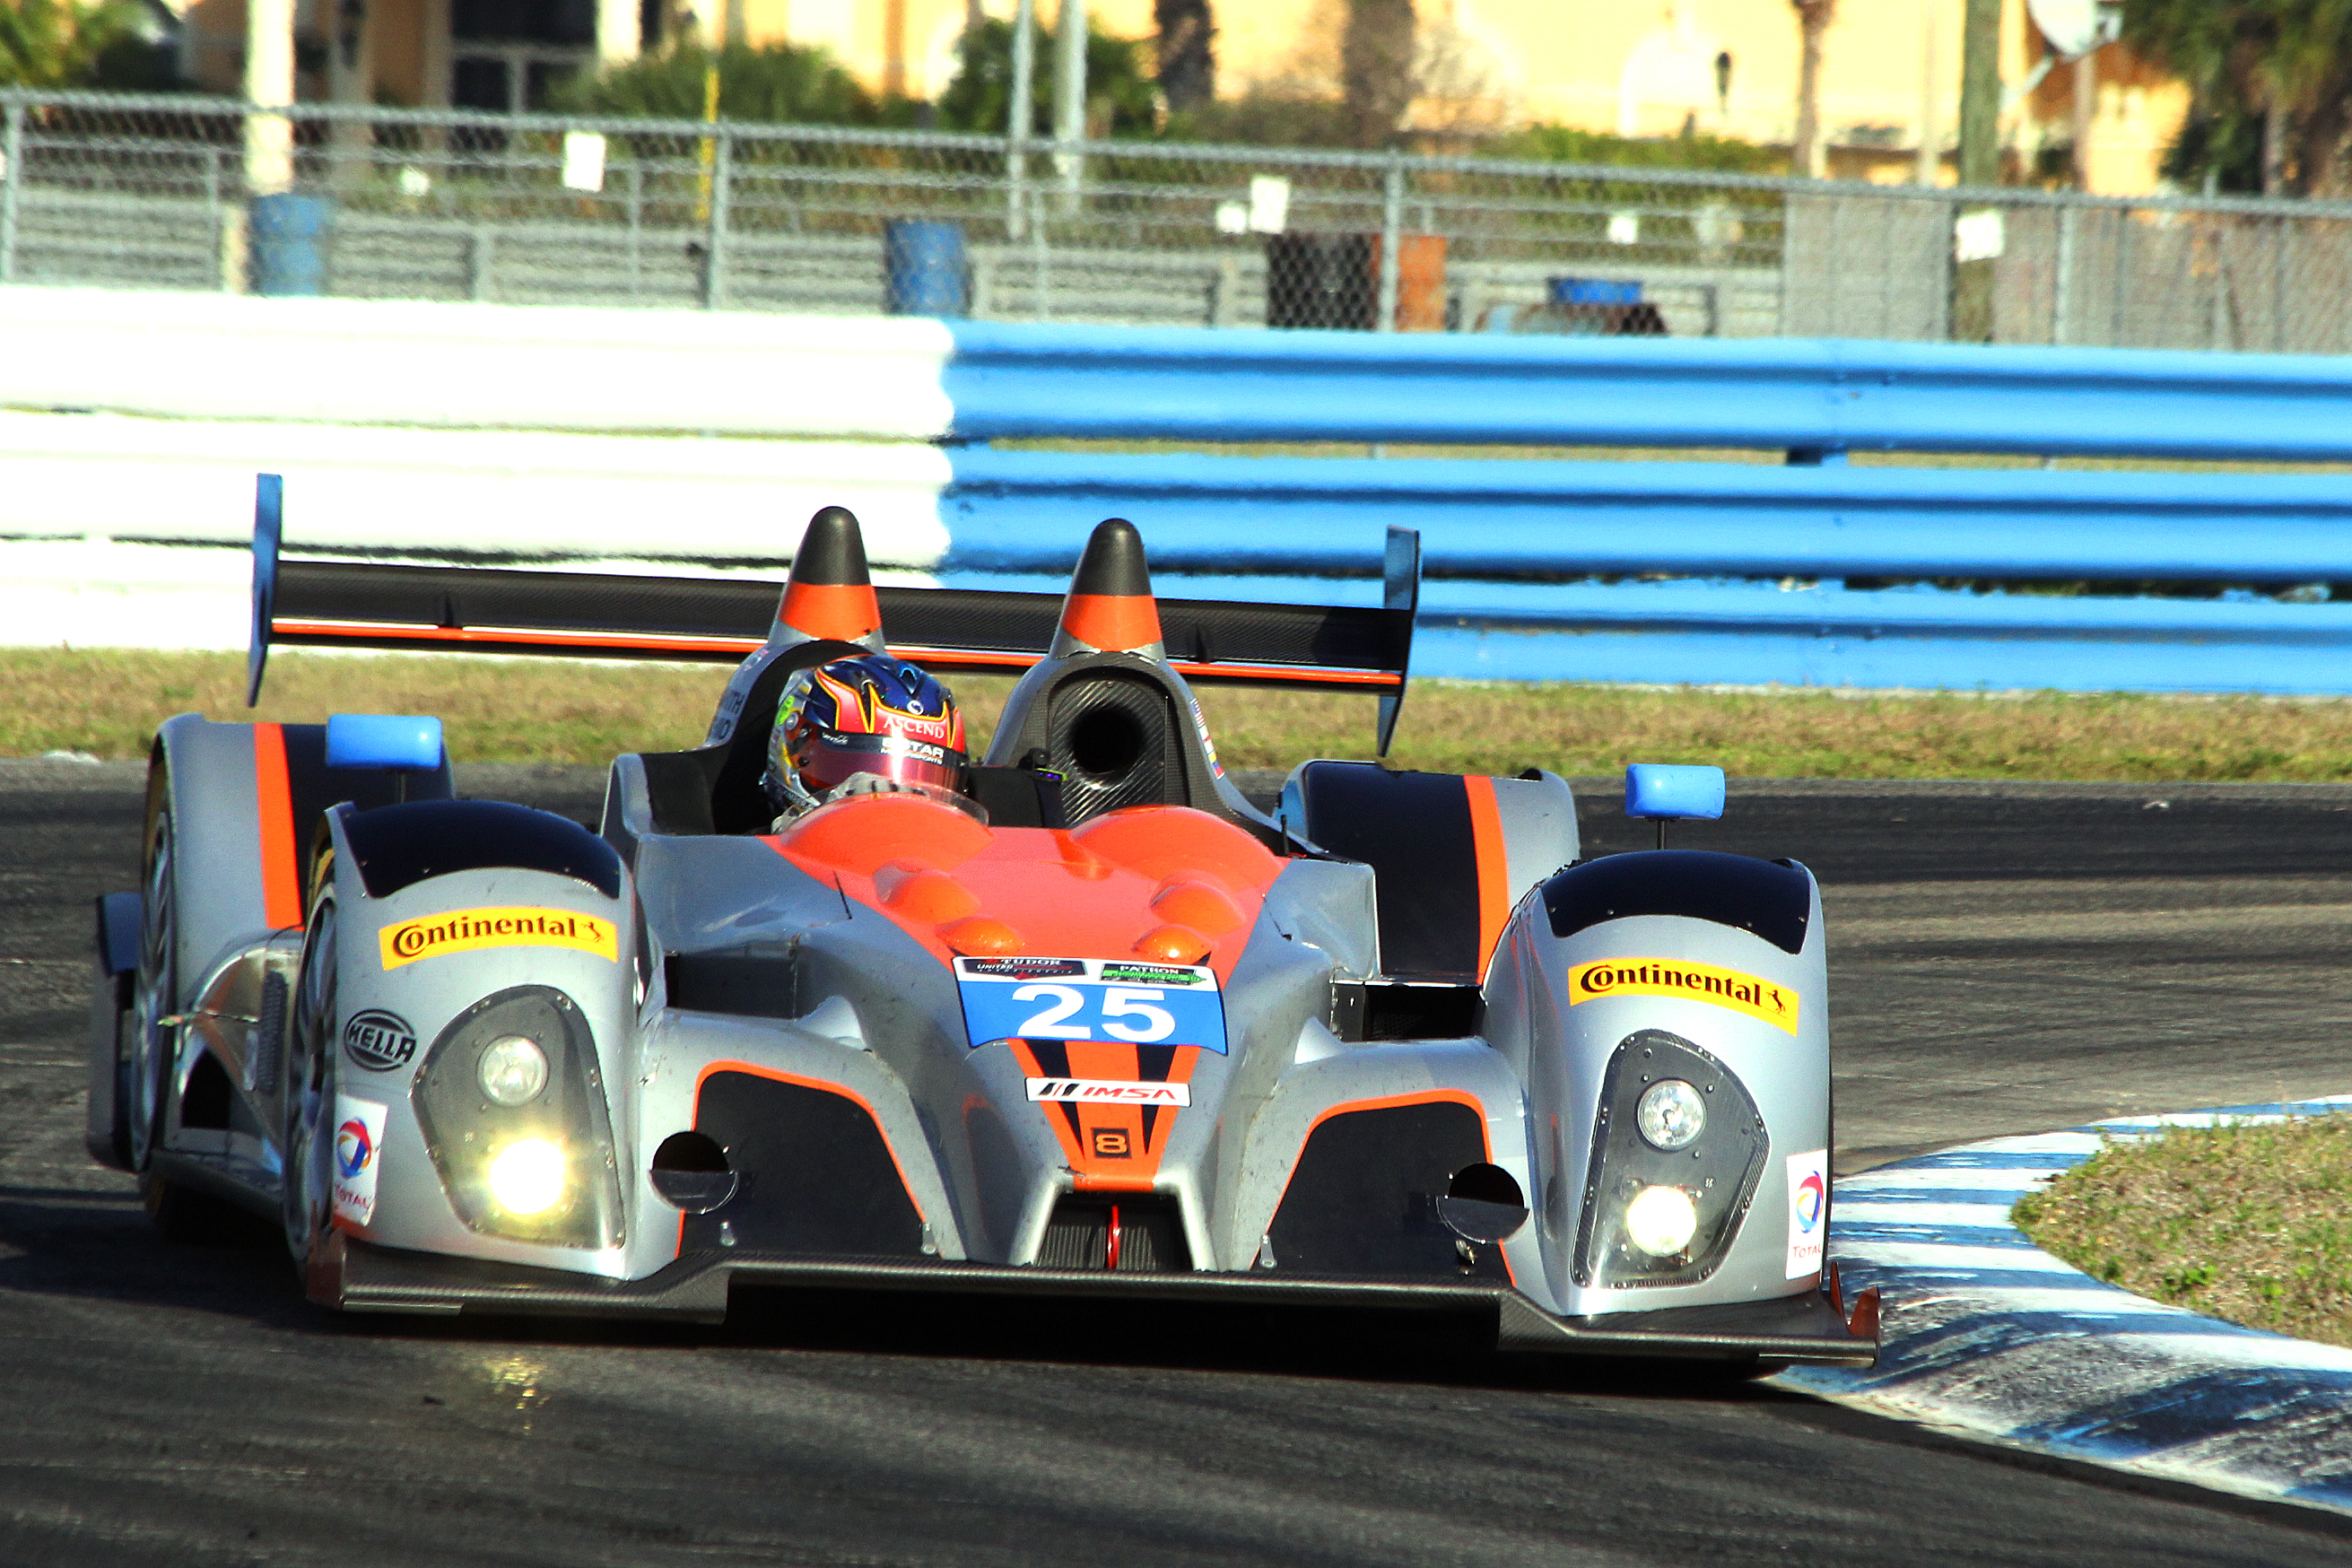 The #25 8Star PC Oreca-Chevrolet was quickest in class in both sessions and ended up off track in both sessions. (Chris Jasurek/Epoch Times)